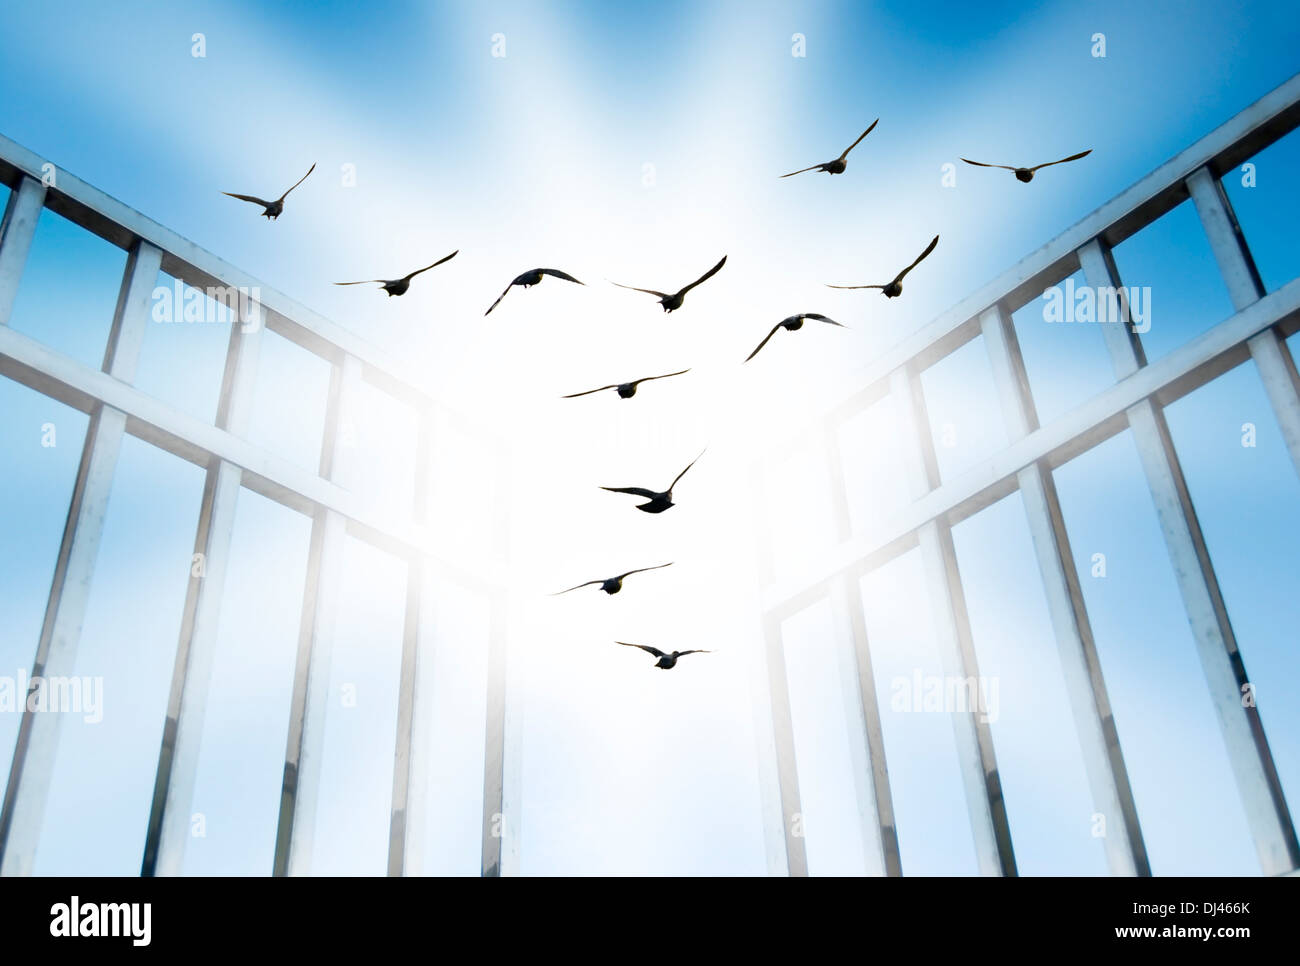 fly overcome the difficult gate - Stock Image